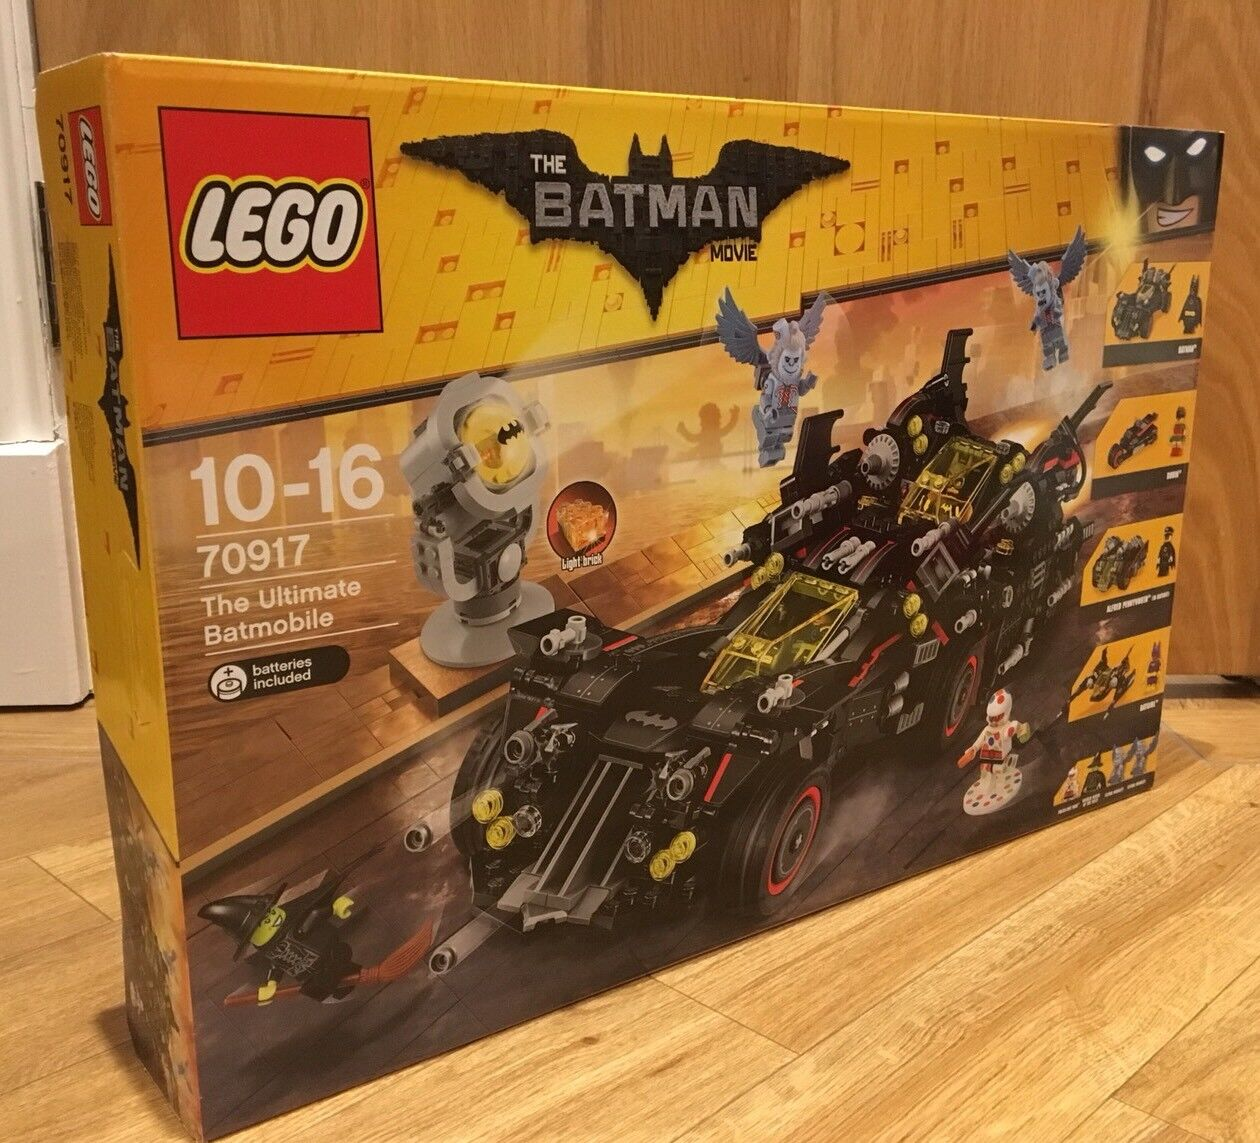 Lego ® Batman Movie 70917 The Ultimate Batmobile - New Sealed